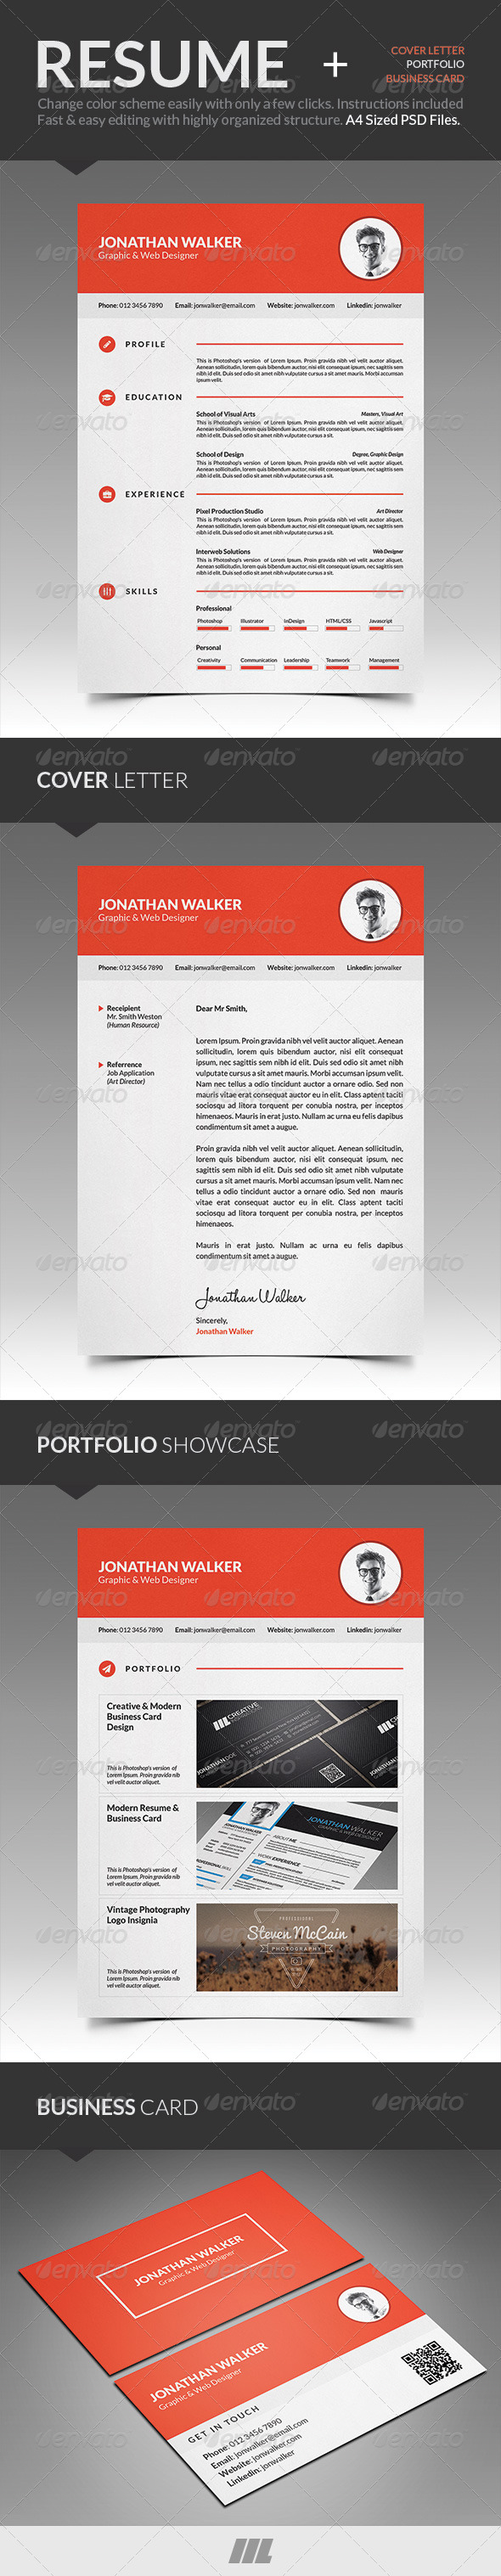 Clean Resume With Business Card - Resumes Stationery